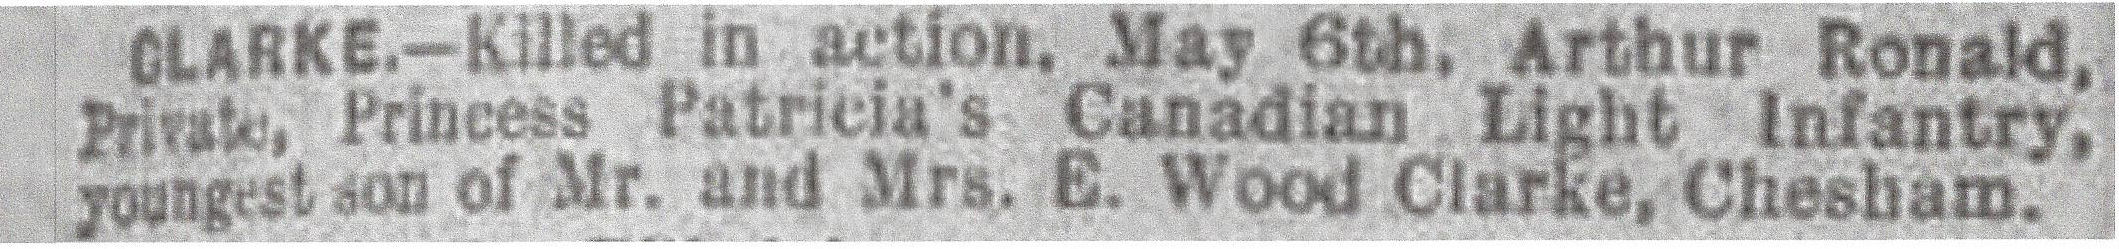 Newspaper Clipping– Newspaper clipping from Daily Telegraph of May 17, 1915. Image taken from web address of http://www.telegraph.co.uk/news/ww1-archive/11600384/Daily-Telegraph-May-17-1915.html